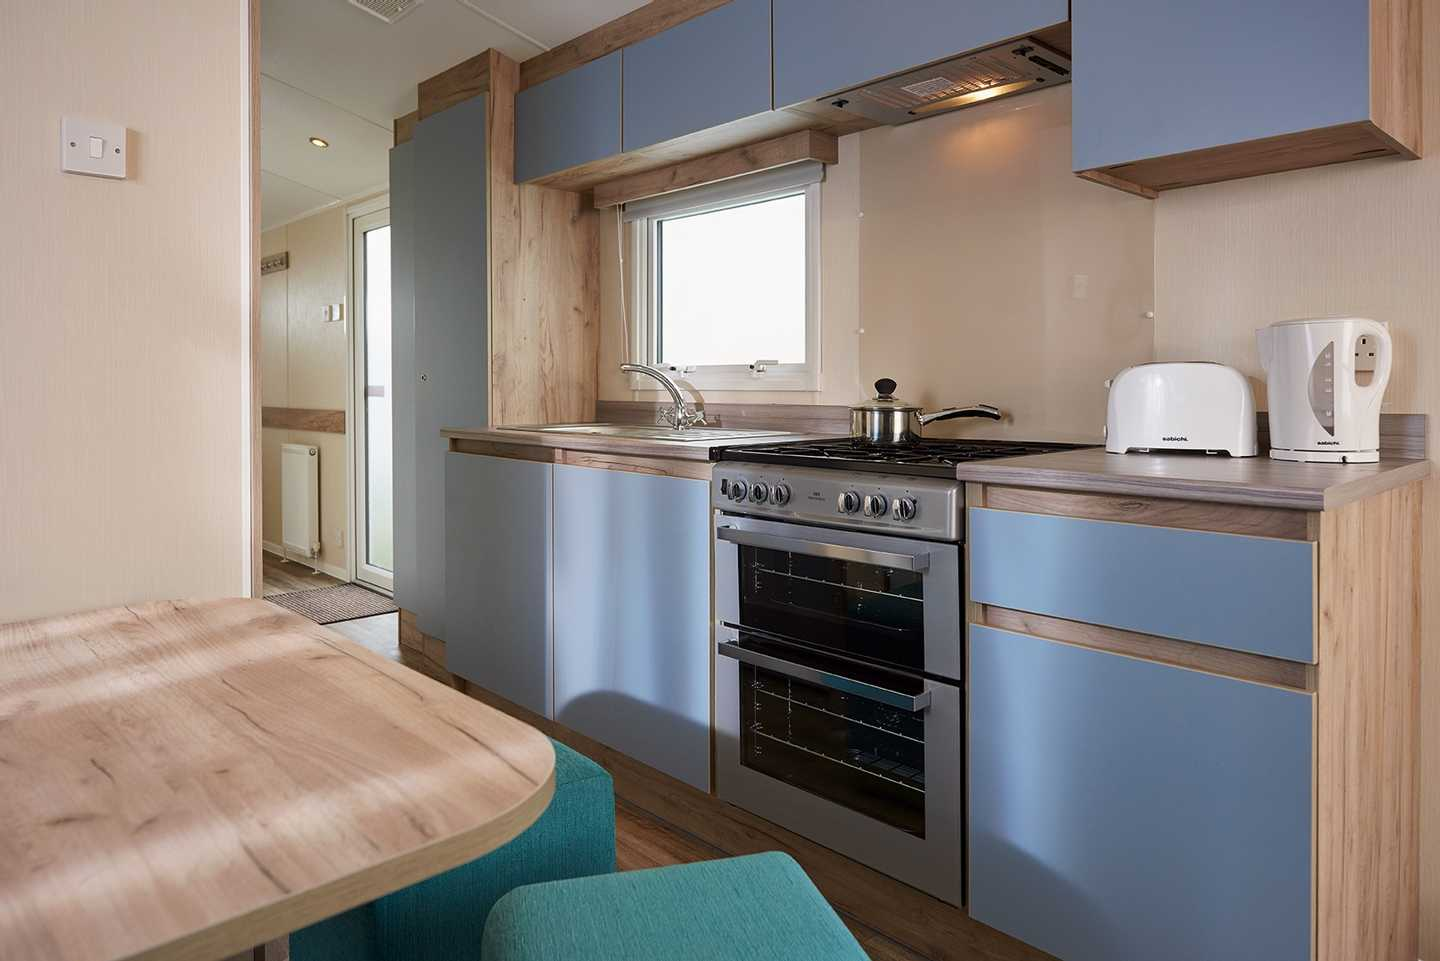 Standard Family Caravan Holiday Accommodation Haven